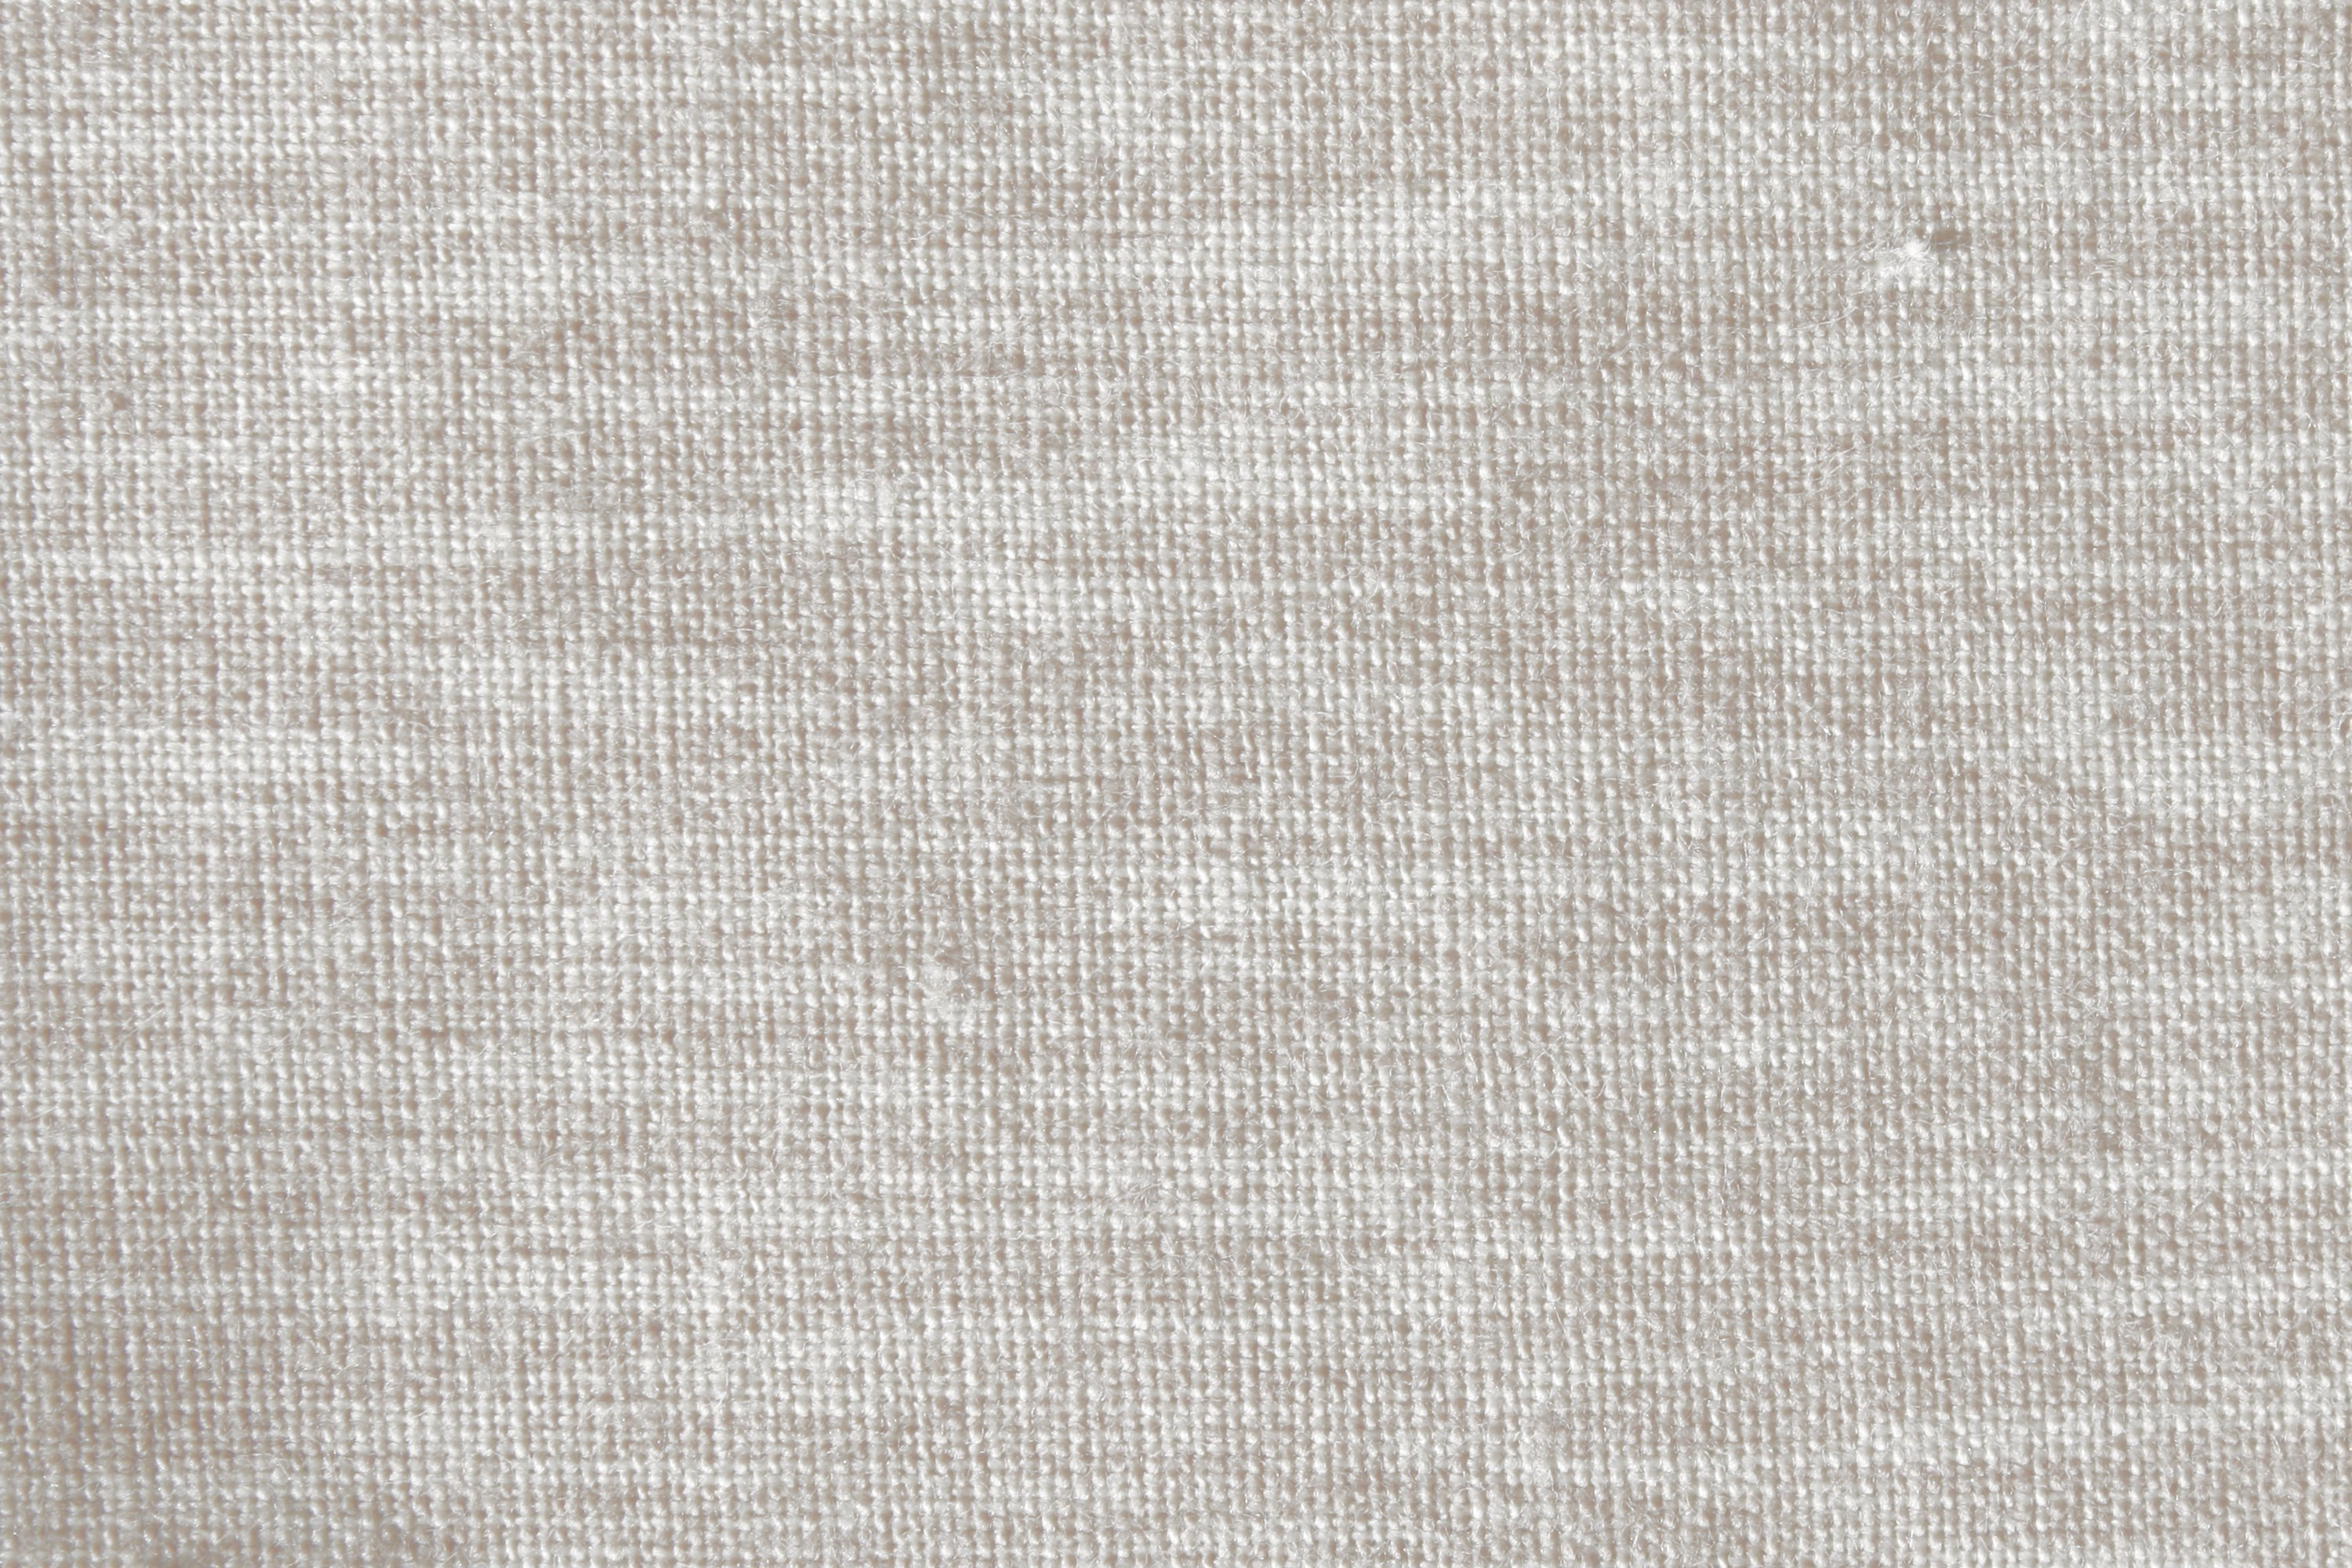 White woven fabric close up texture picture free for Free white texture